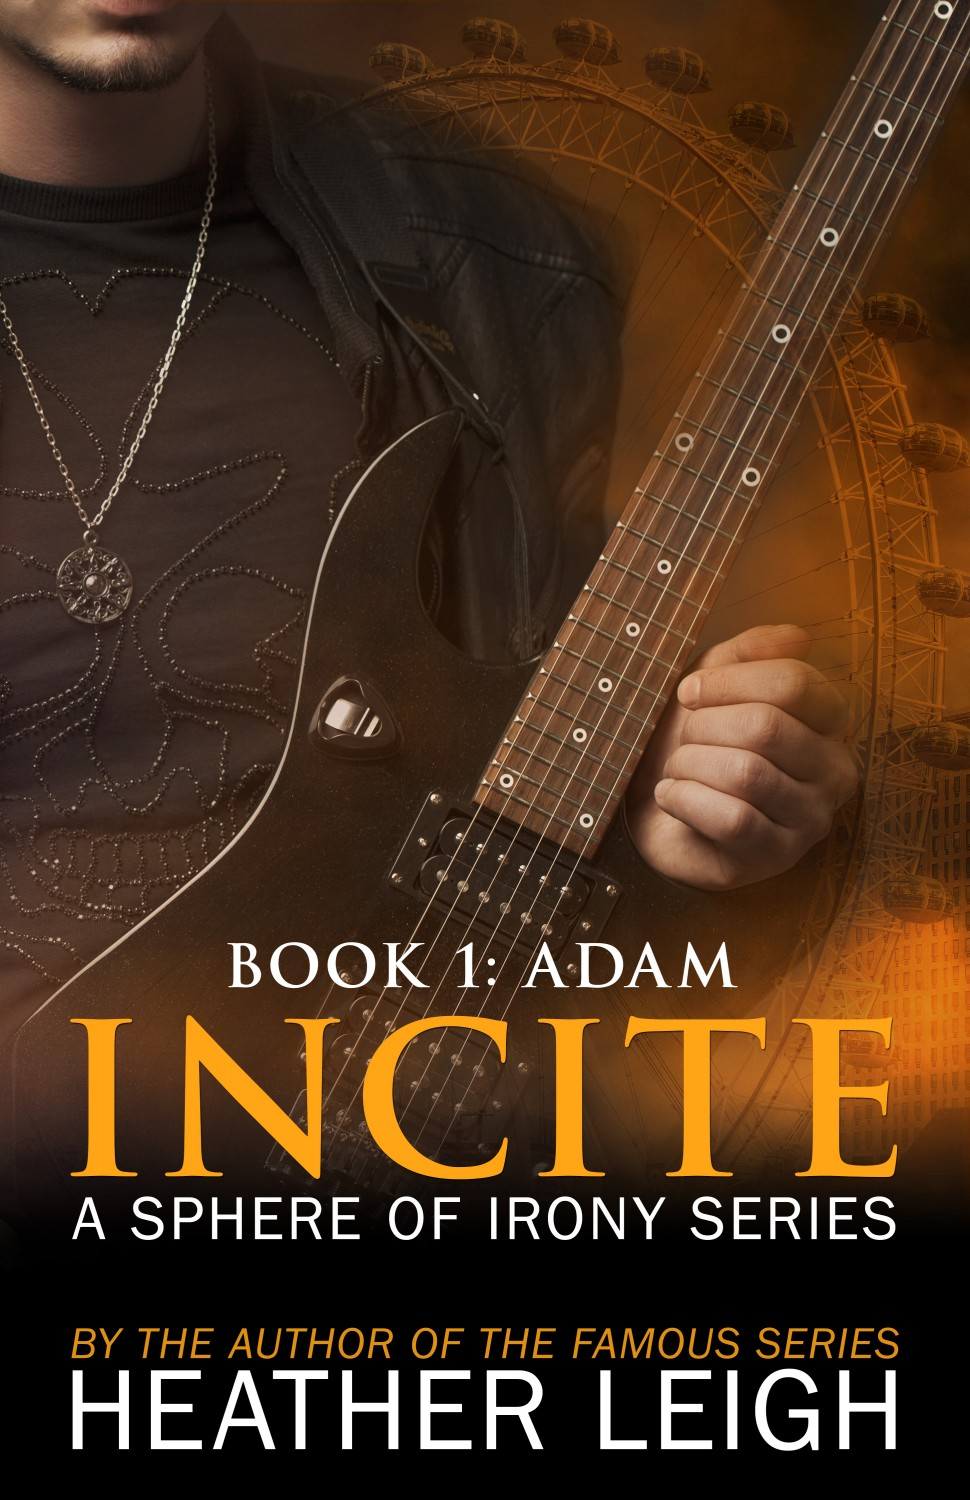 Incite - Amazon